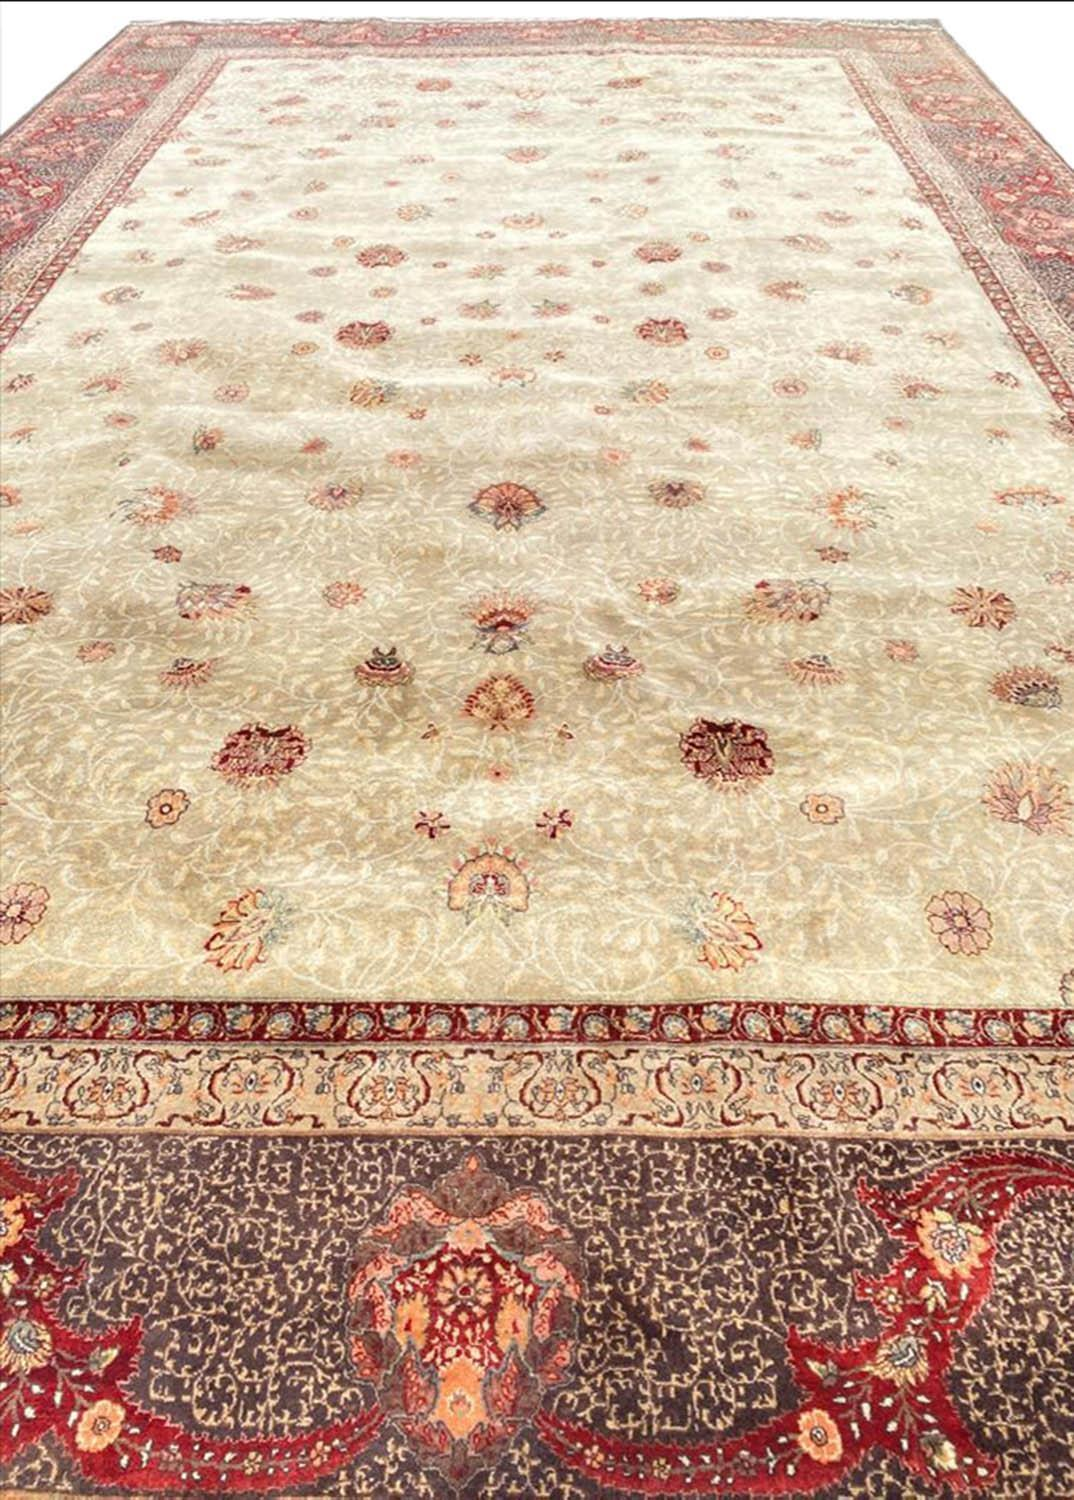 FINE HEREKE DESIGN CARPET, 560cm x 353cm. - Image 3 of 4